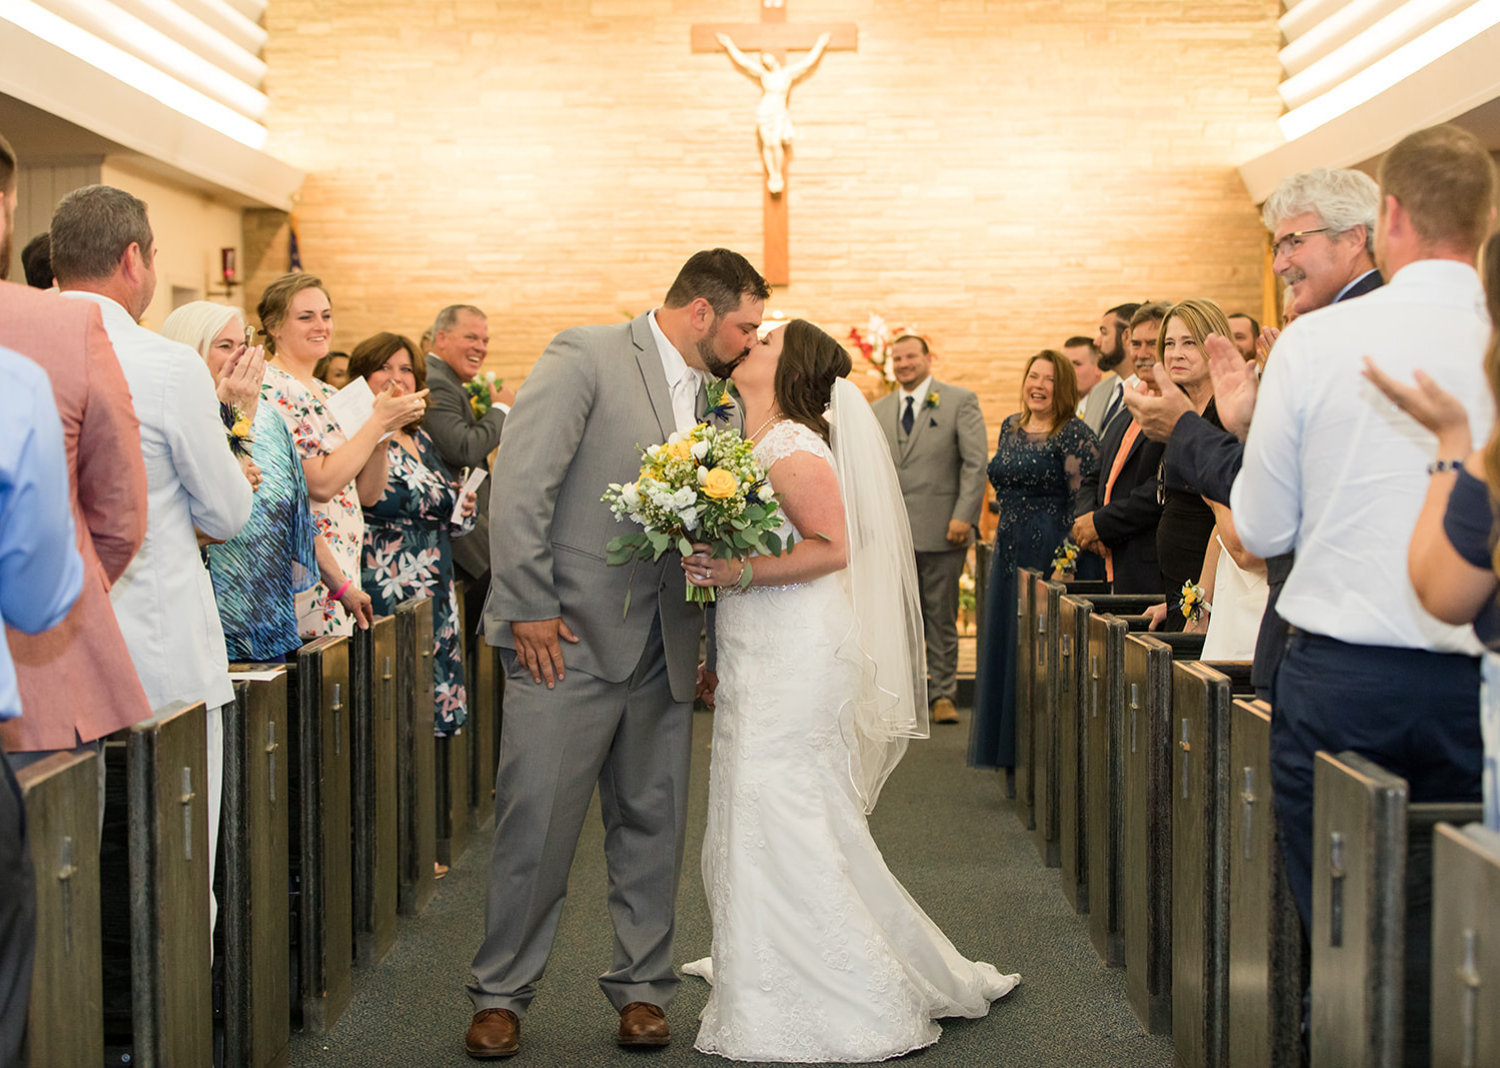 bride and groom share a kiss while walking down the aisle